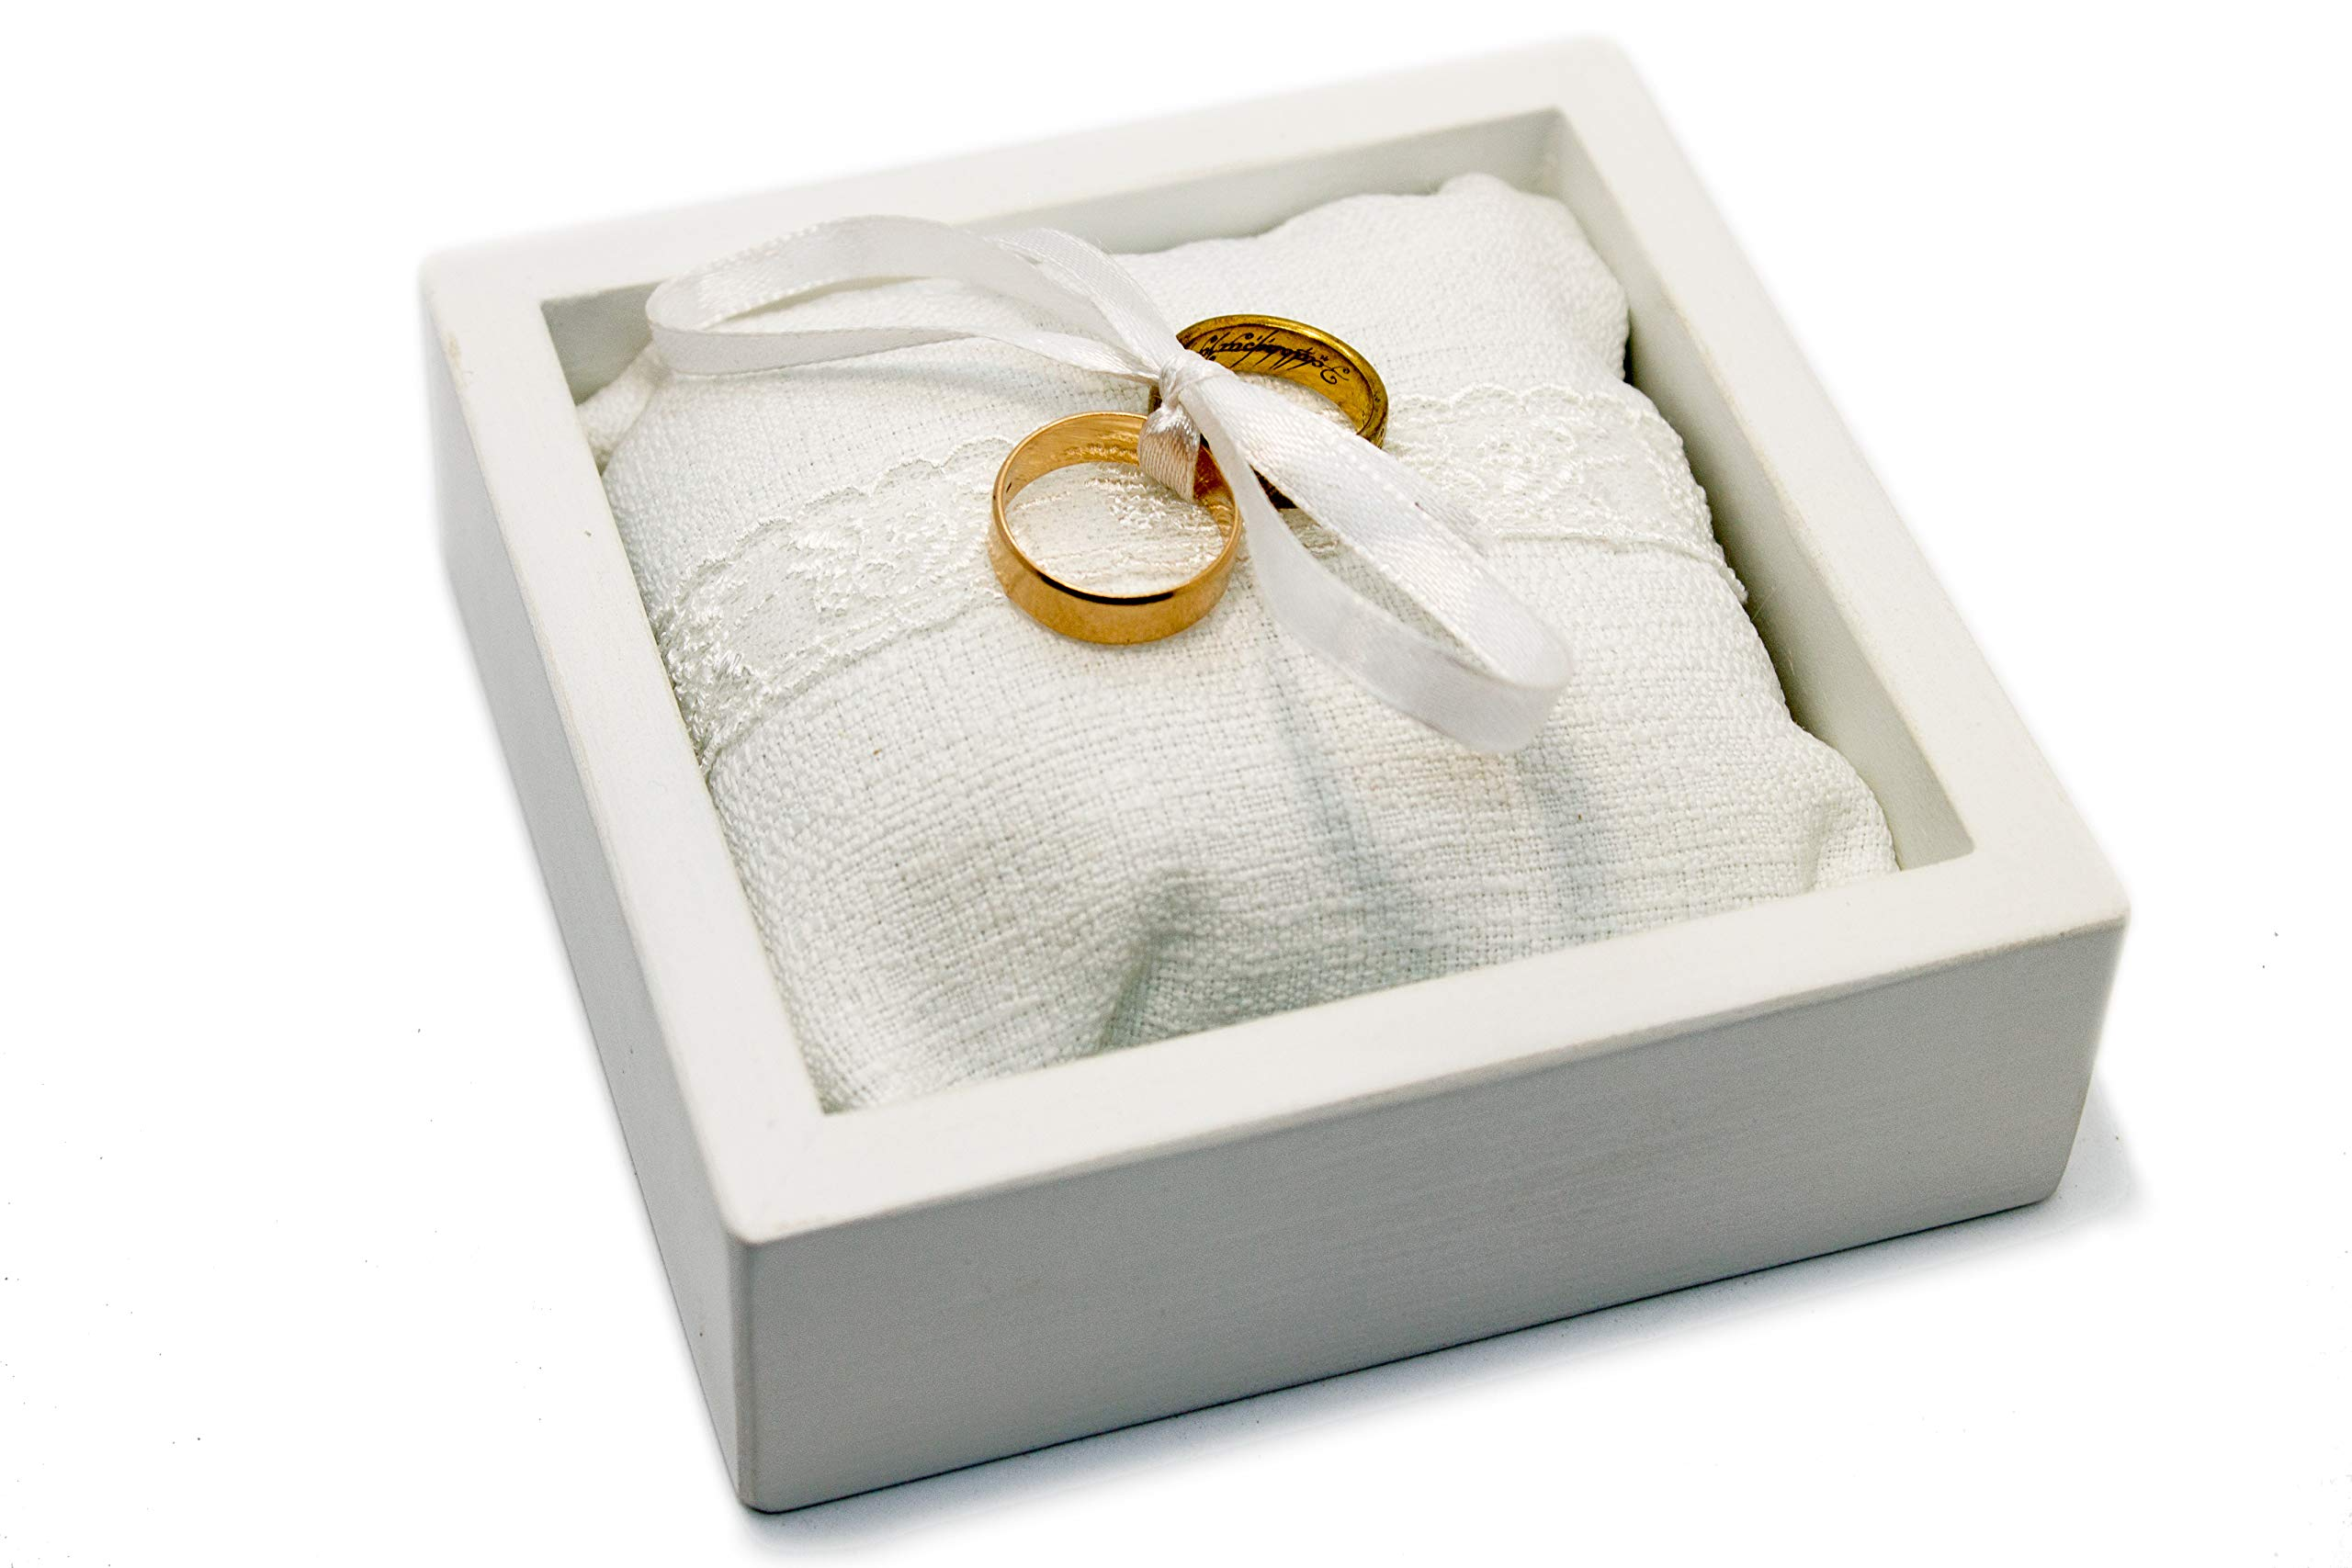 Ring Bearer White Box with Pillow - Custom Ring Holder Box Case - Wooden Marriage Ring Box for Wedding Ceremonyolder Box Case - Wooden Marriage Ring Box for Wedding Ceremony